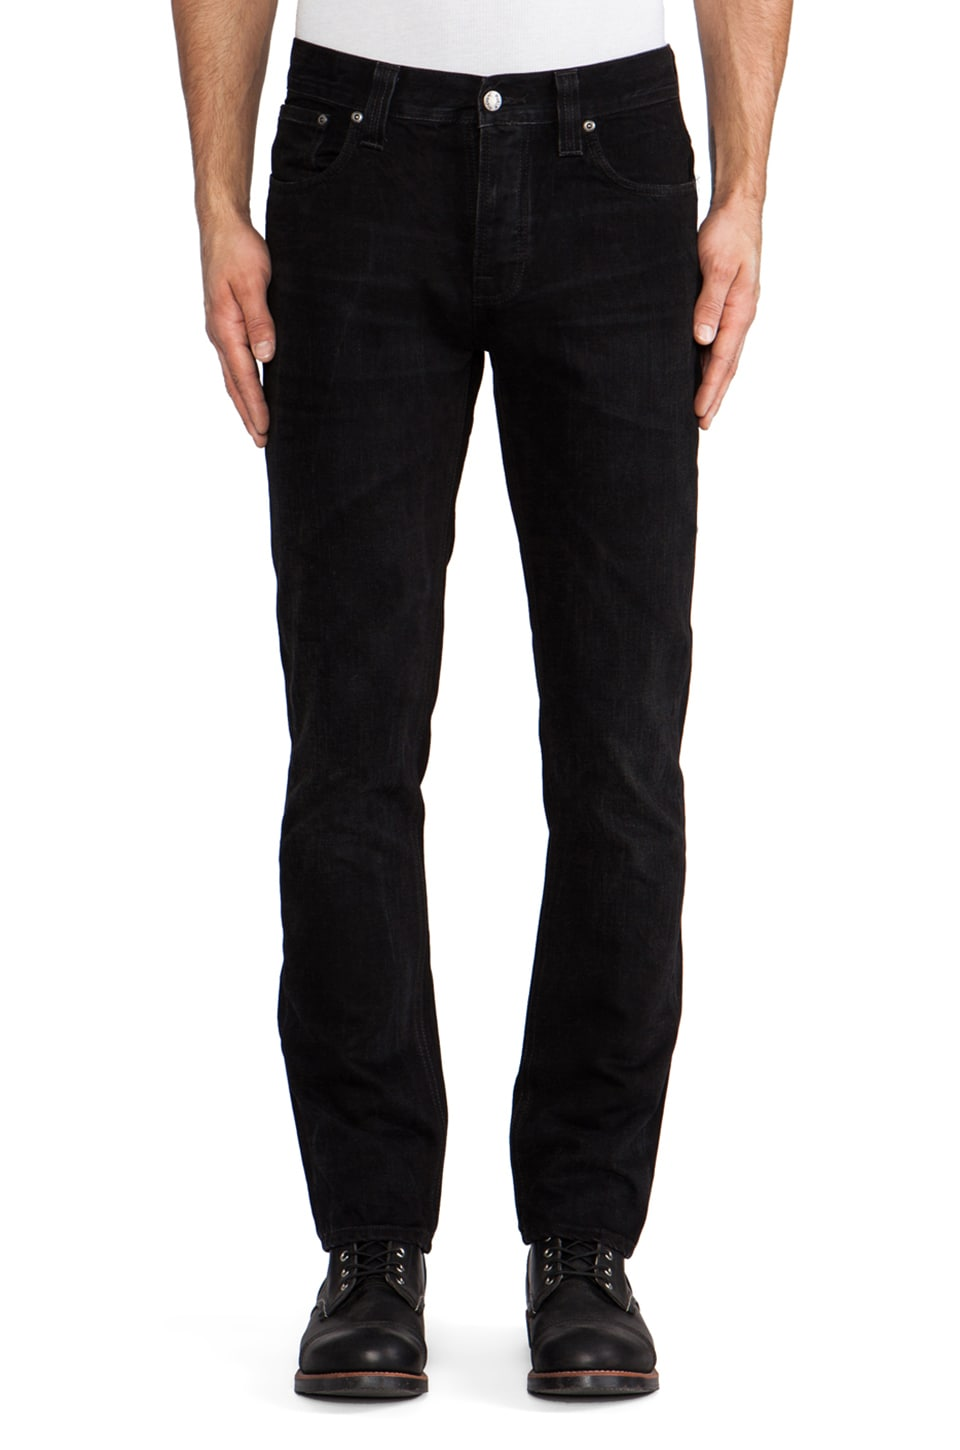 Nudie Jeans Grim Tim in Black Grease